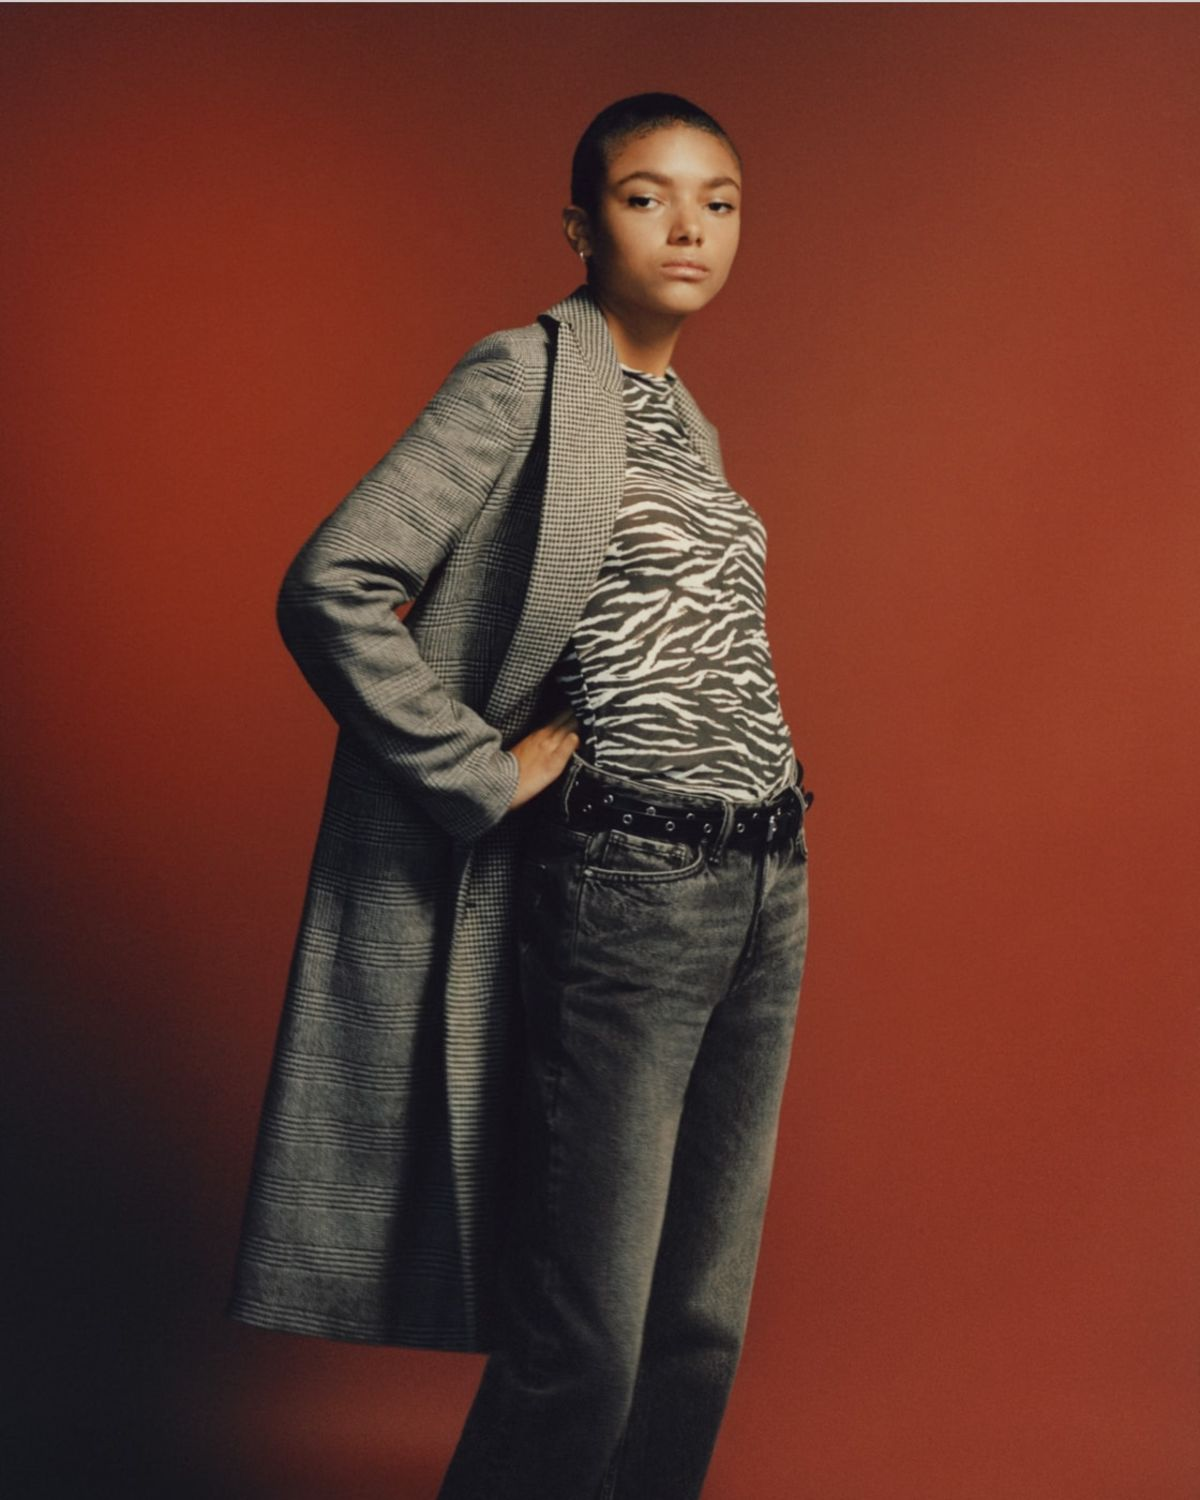 Image of a woman wearing a long checked coat over a zebra printed t-shirt and dark denim jeans.